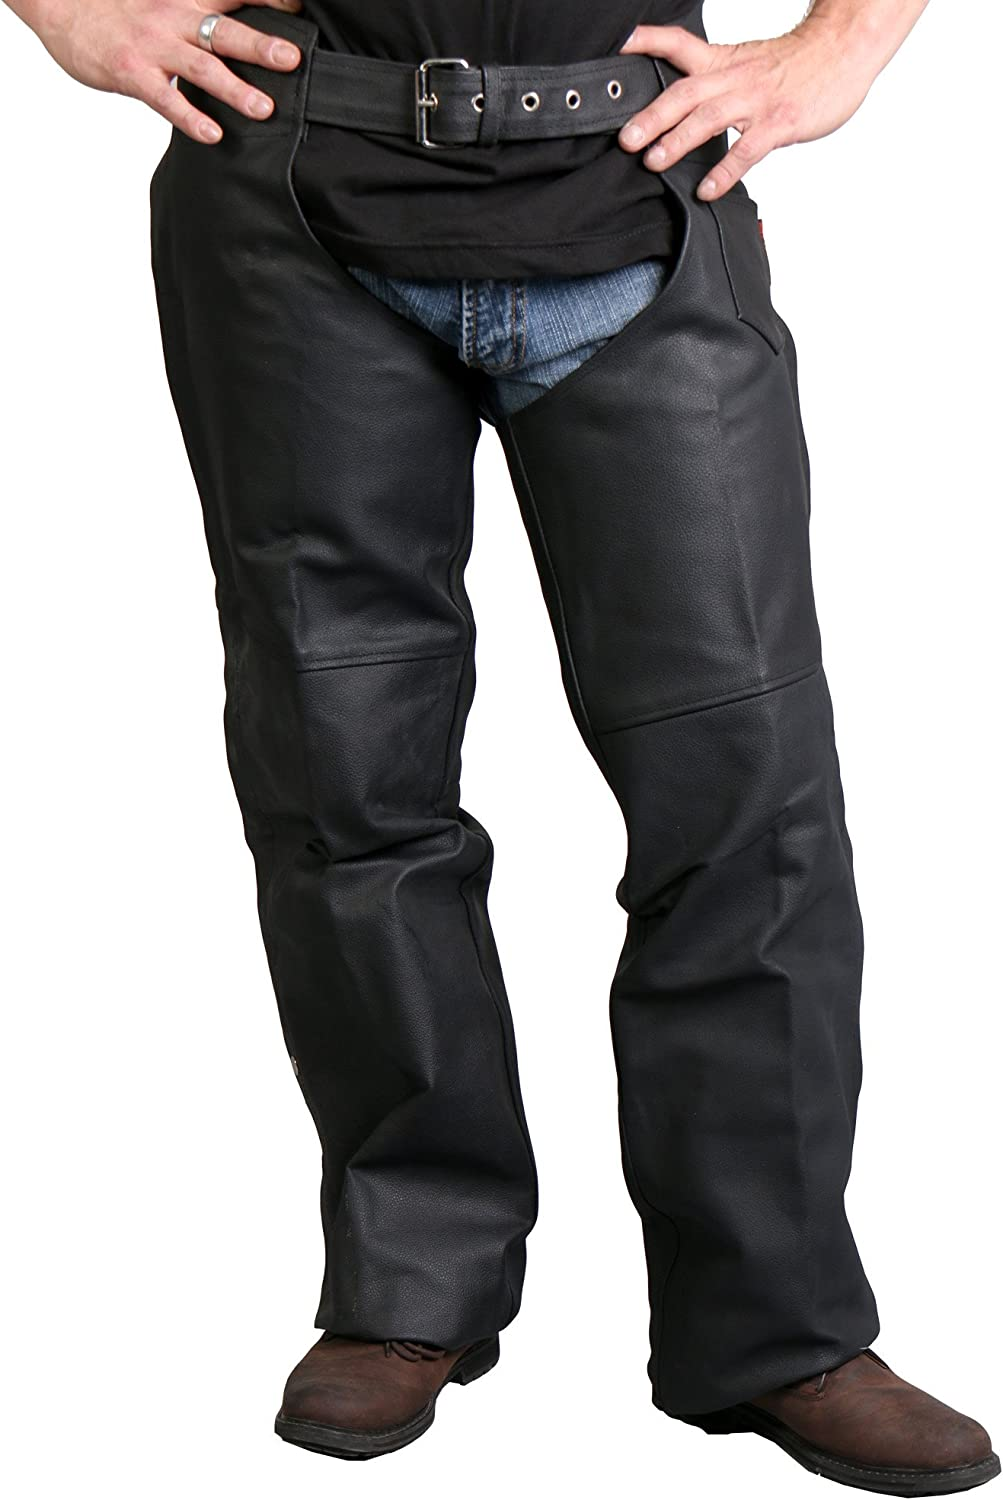 Black, XXXX-Large Hot Leathers Fully Lined Leather Chaps